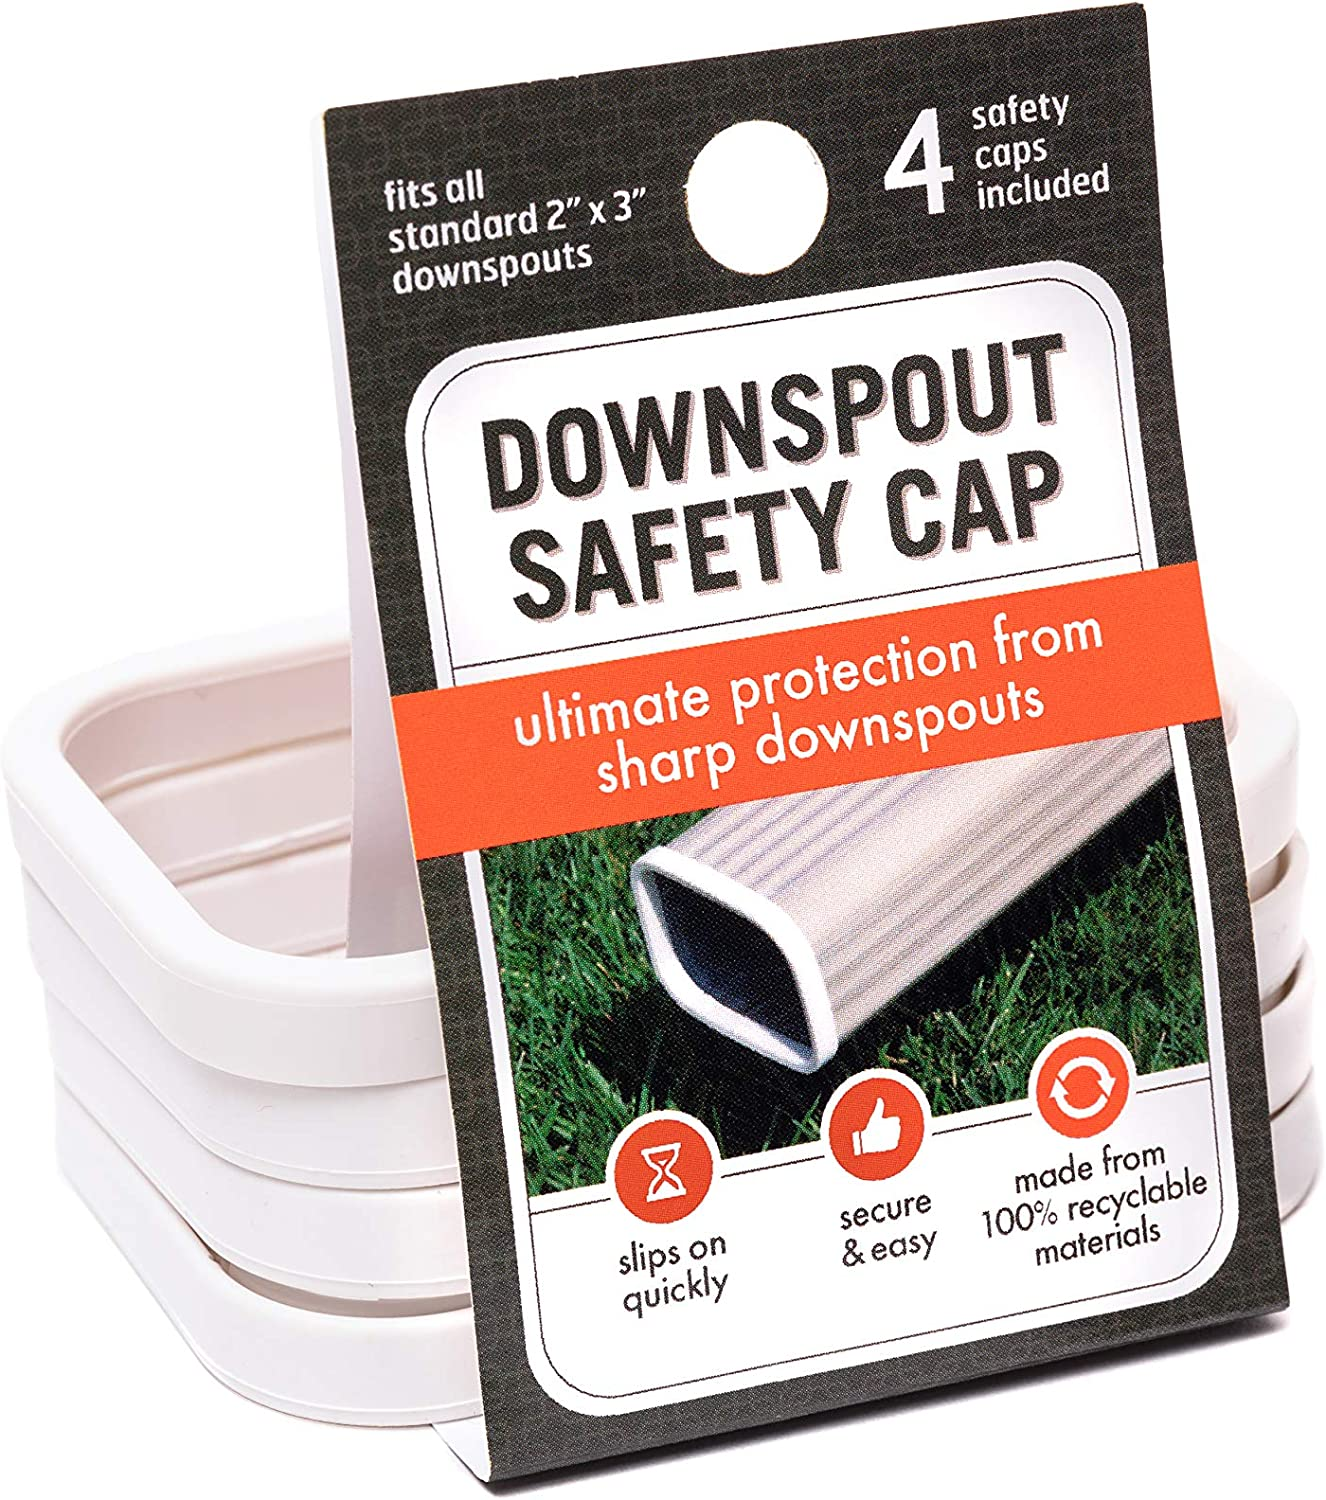 """Downspout Safety Cap   Gutter Downspout Protection for Adults, Kids and Pets   Protect from Gutter Downspout Extension Sharp Edges   2"""" x 3"""" Size Caps   4 Pack   White"""